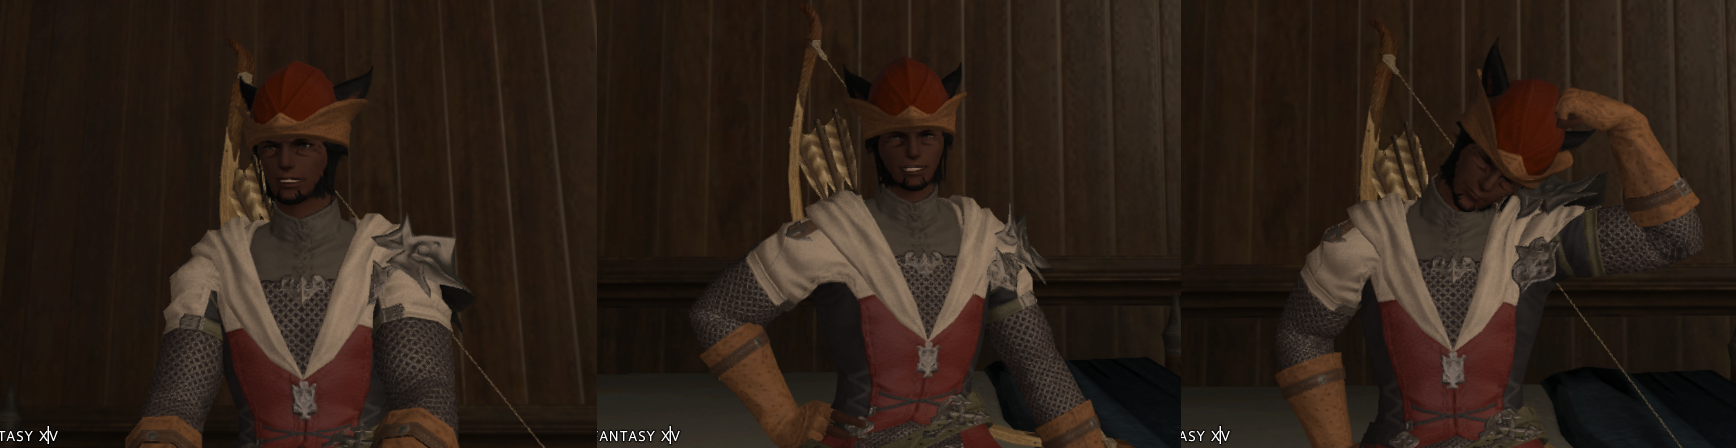 lonely ffxiv cute fantastic awesome picture this comment cheesecake phase contest wanted just